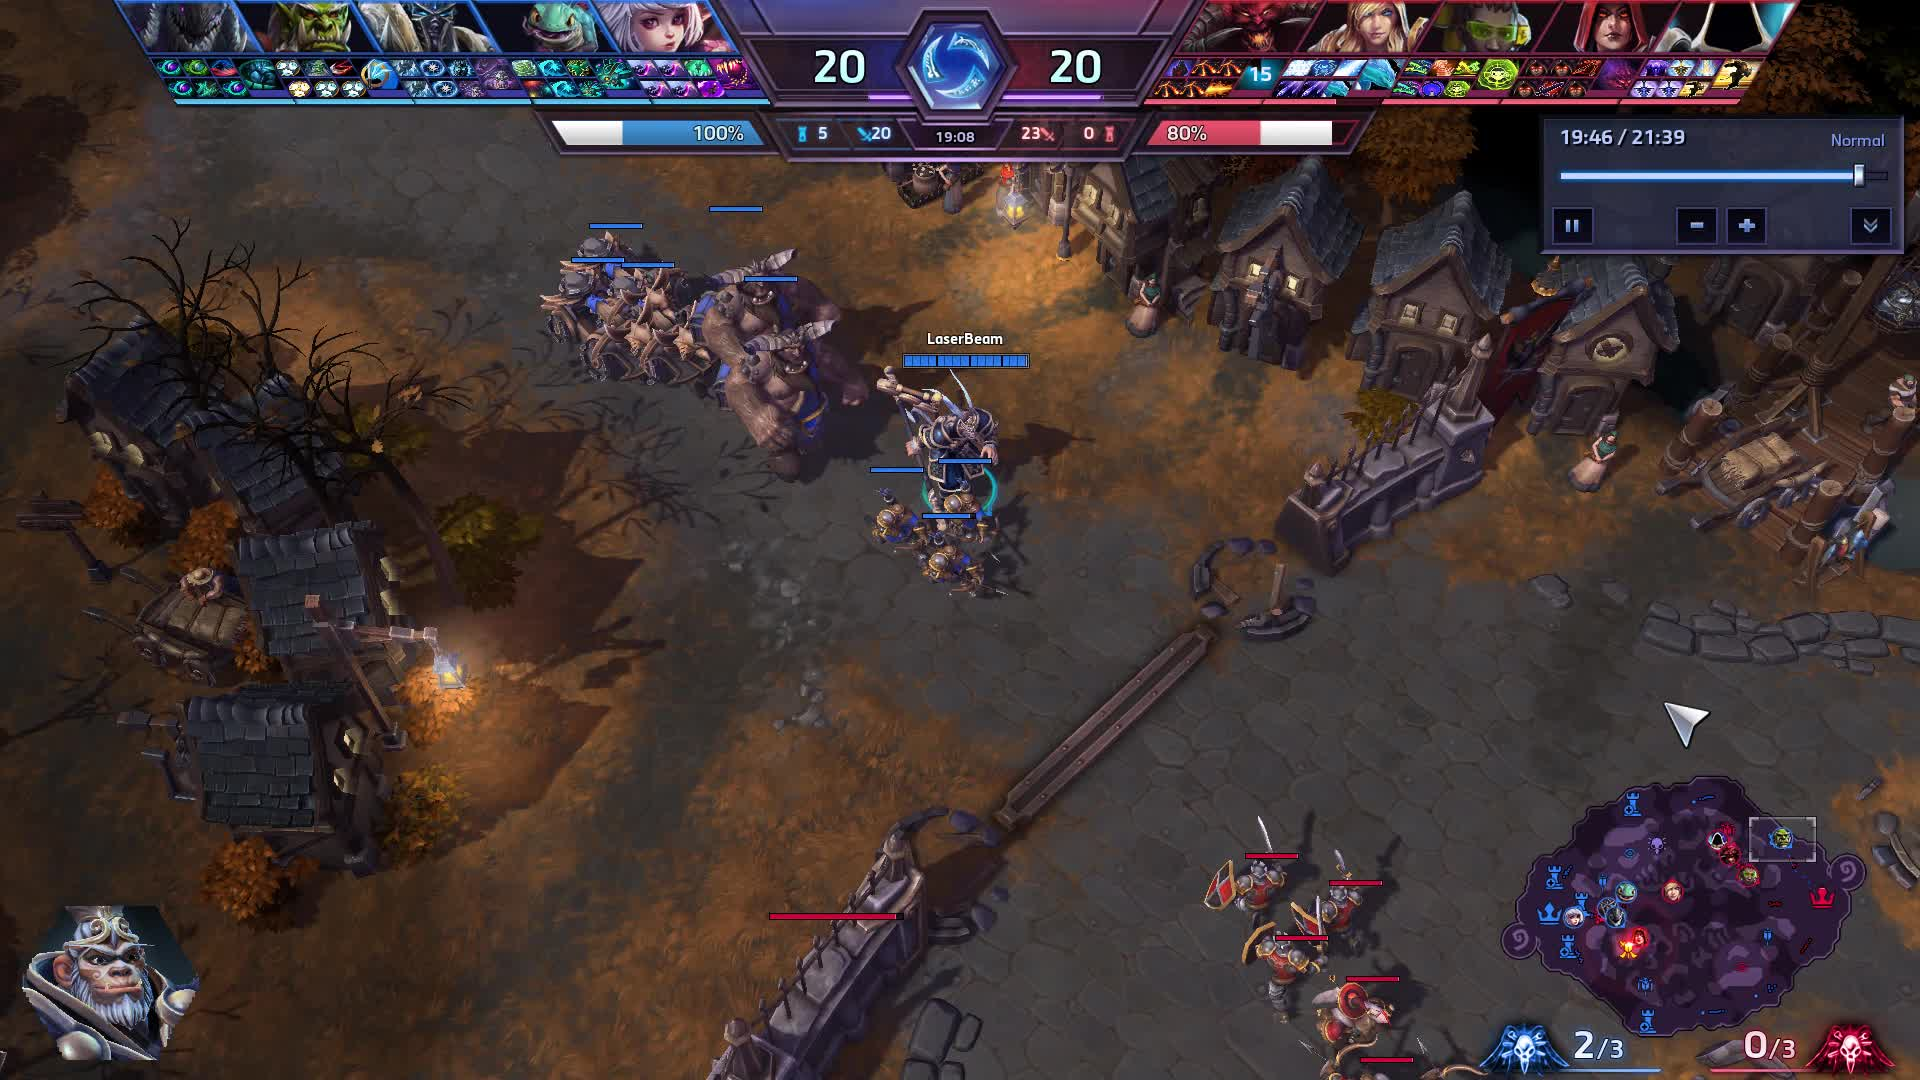 heroesofthestorm, vlc-record-2018-11-16-18h54m48s-Heroes of the Storm 2018.11.16 - 18.52.38.02.mp4- GIFs